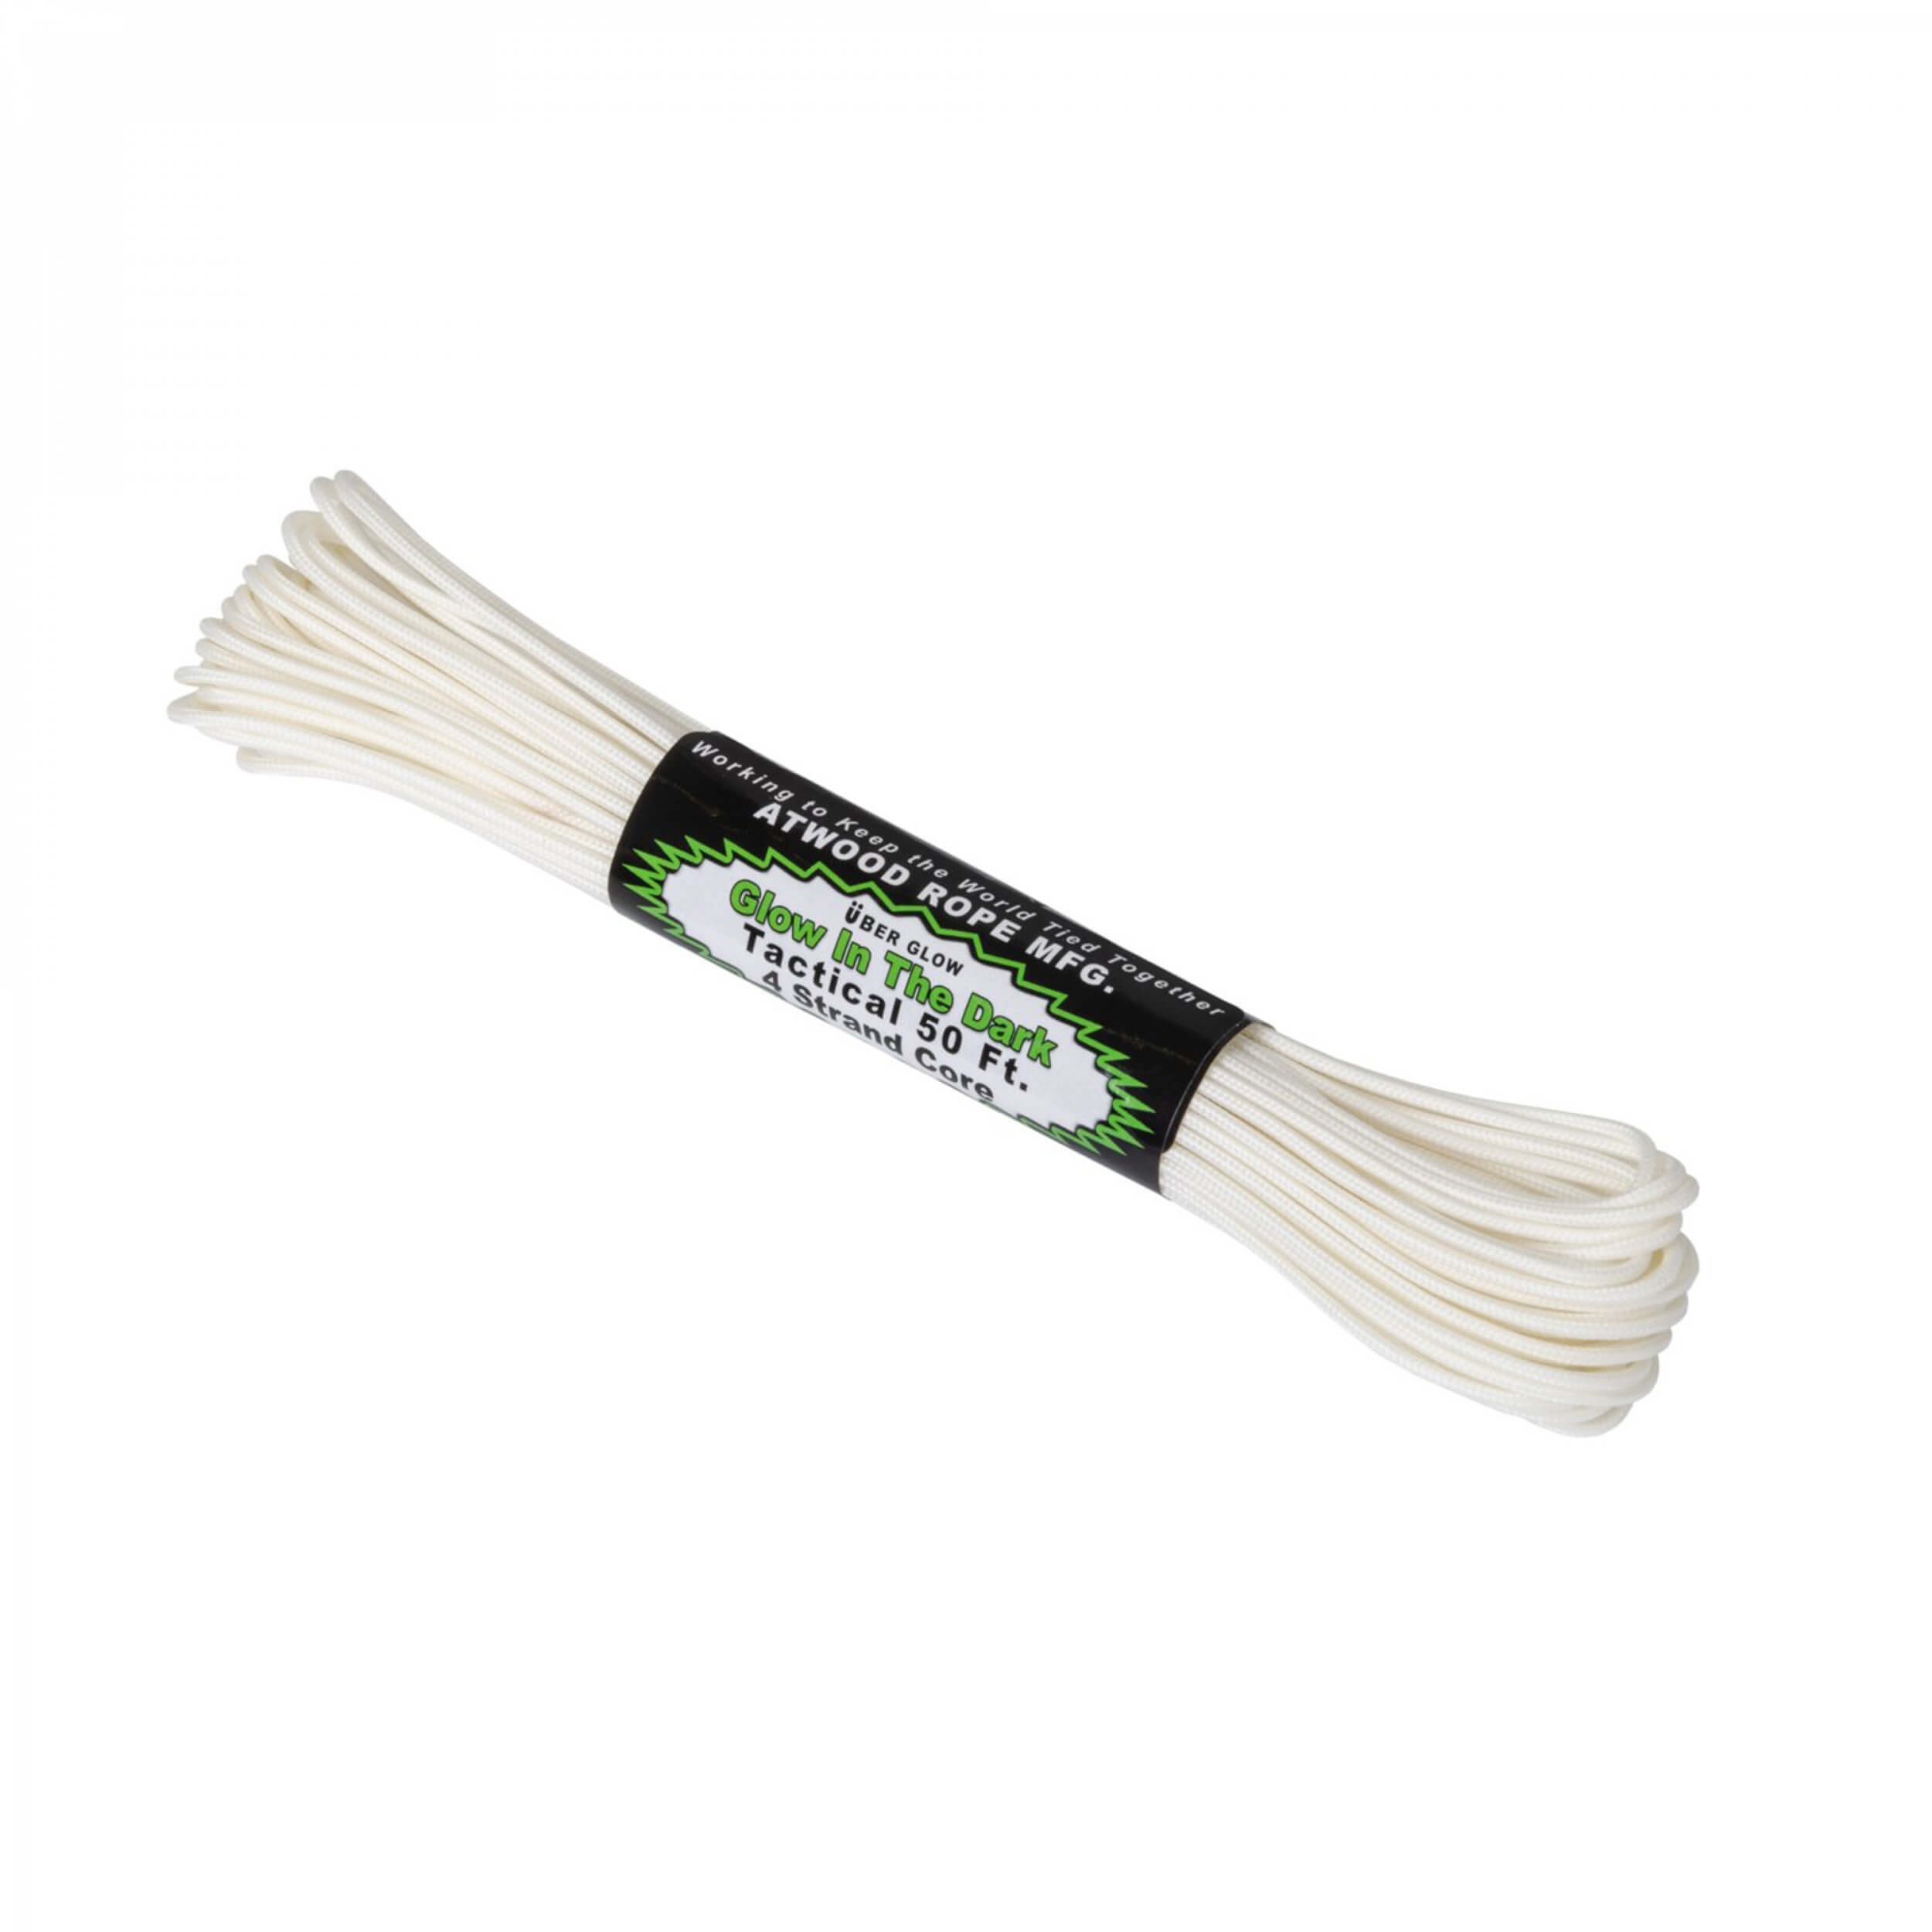 Helikon-Tex Tactical 275 Cord Glow in the Dark (50FT)